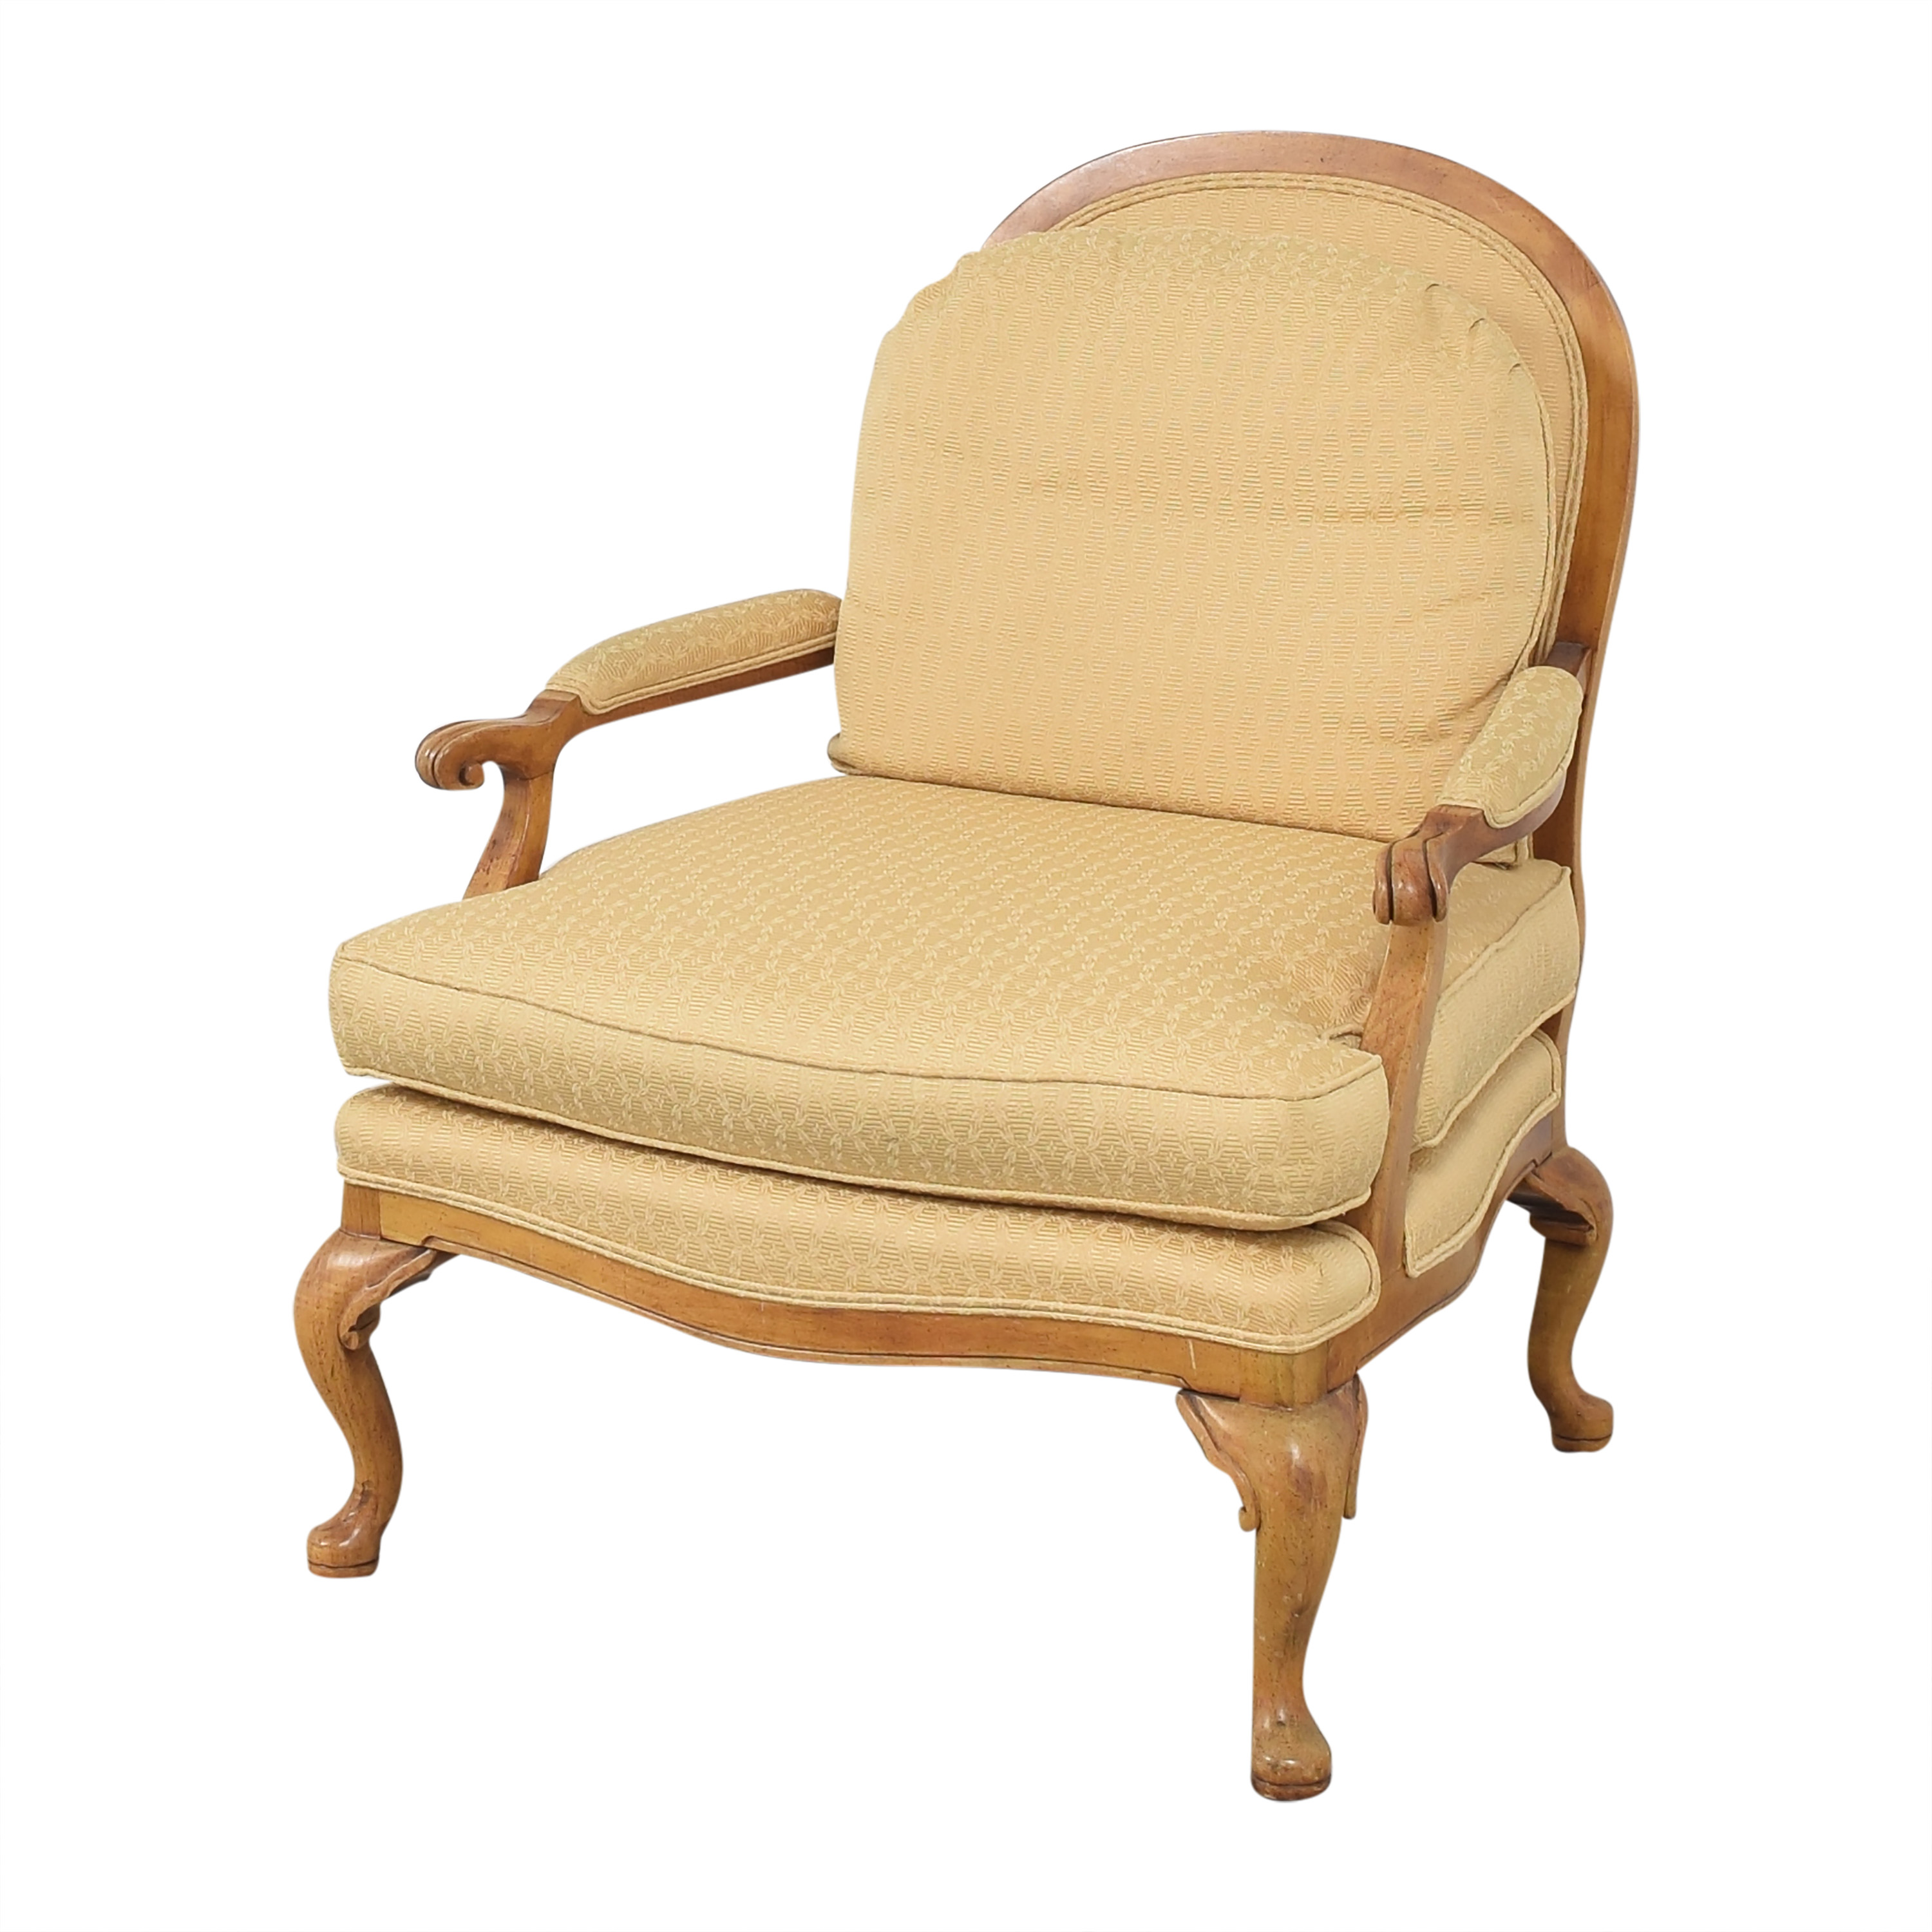 Highland House Accent Fauteuil Chair Highland House Furniture